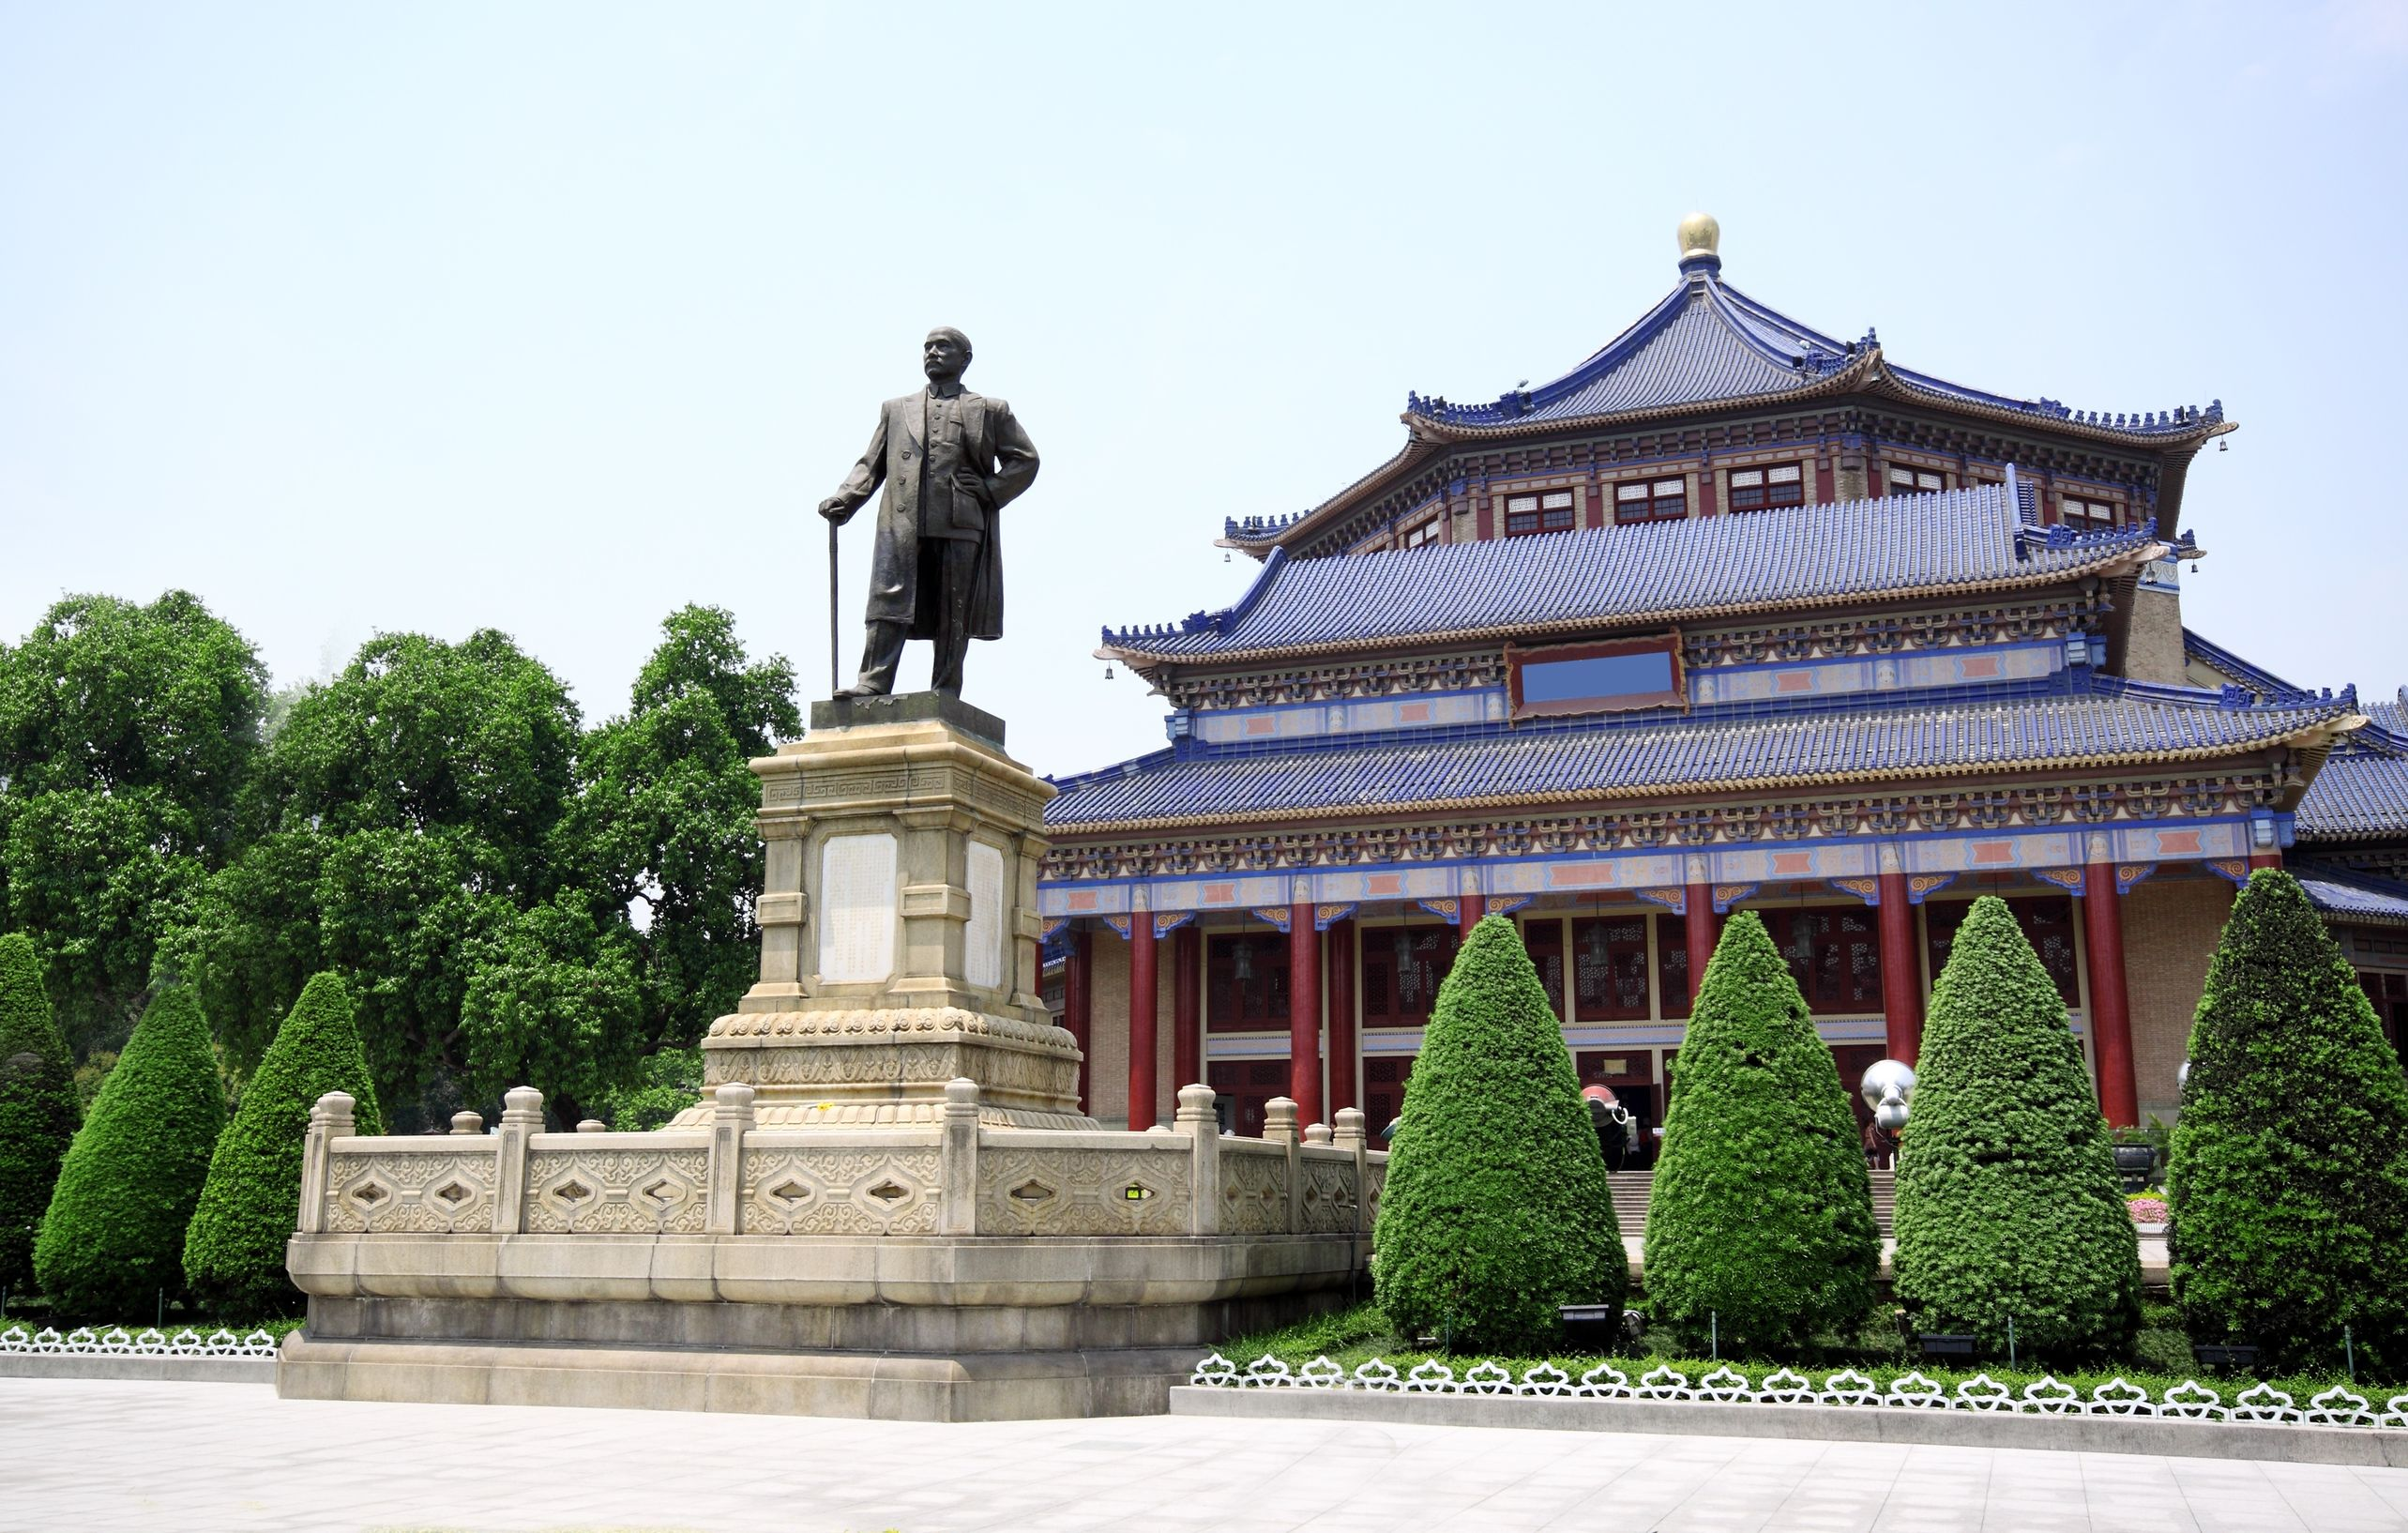 Sun-Yat-sen-Memorial-Hall-in-Guangzhou-China